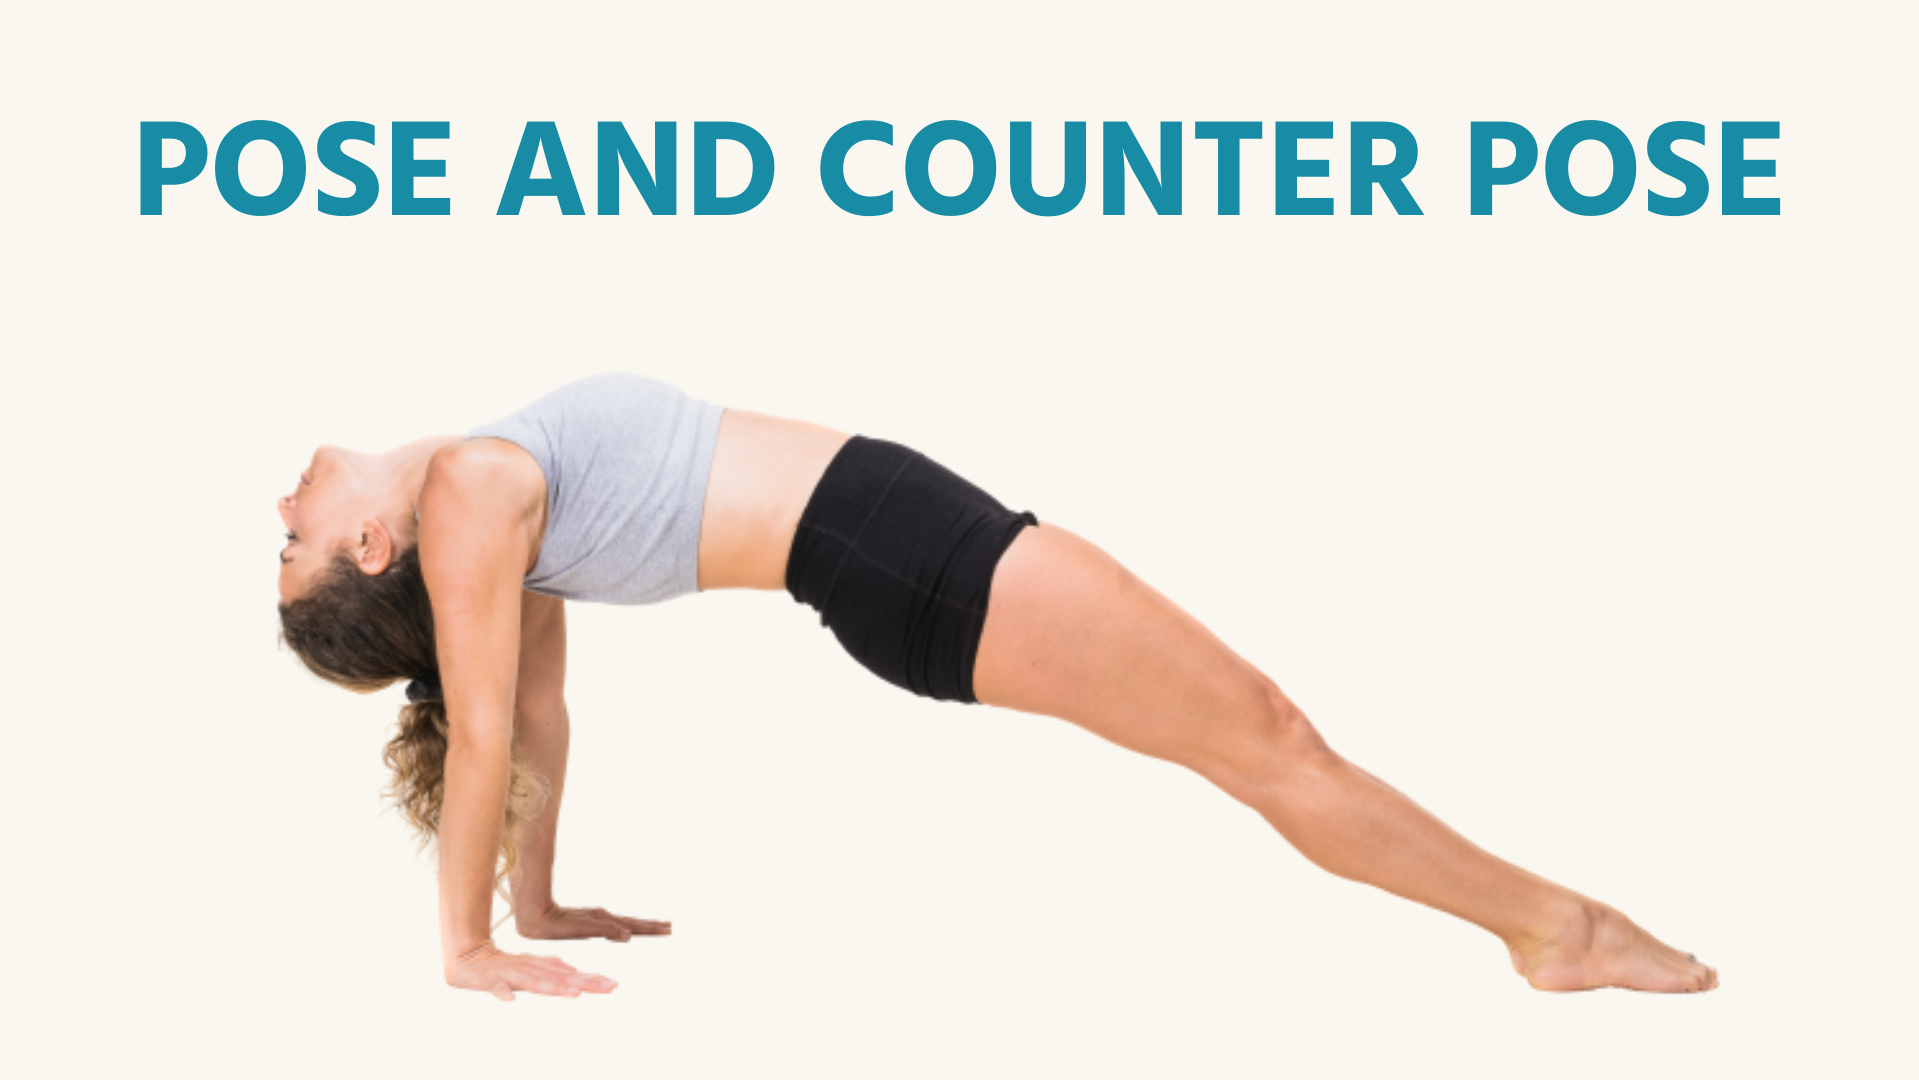 Pose and Counter Pose